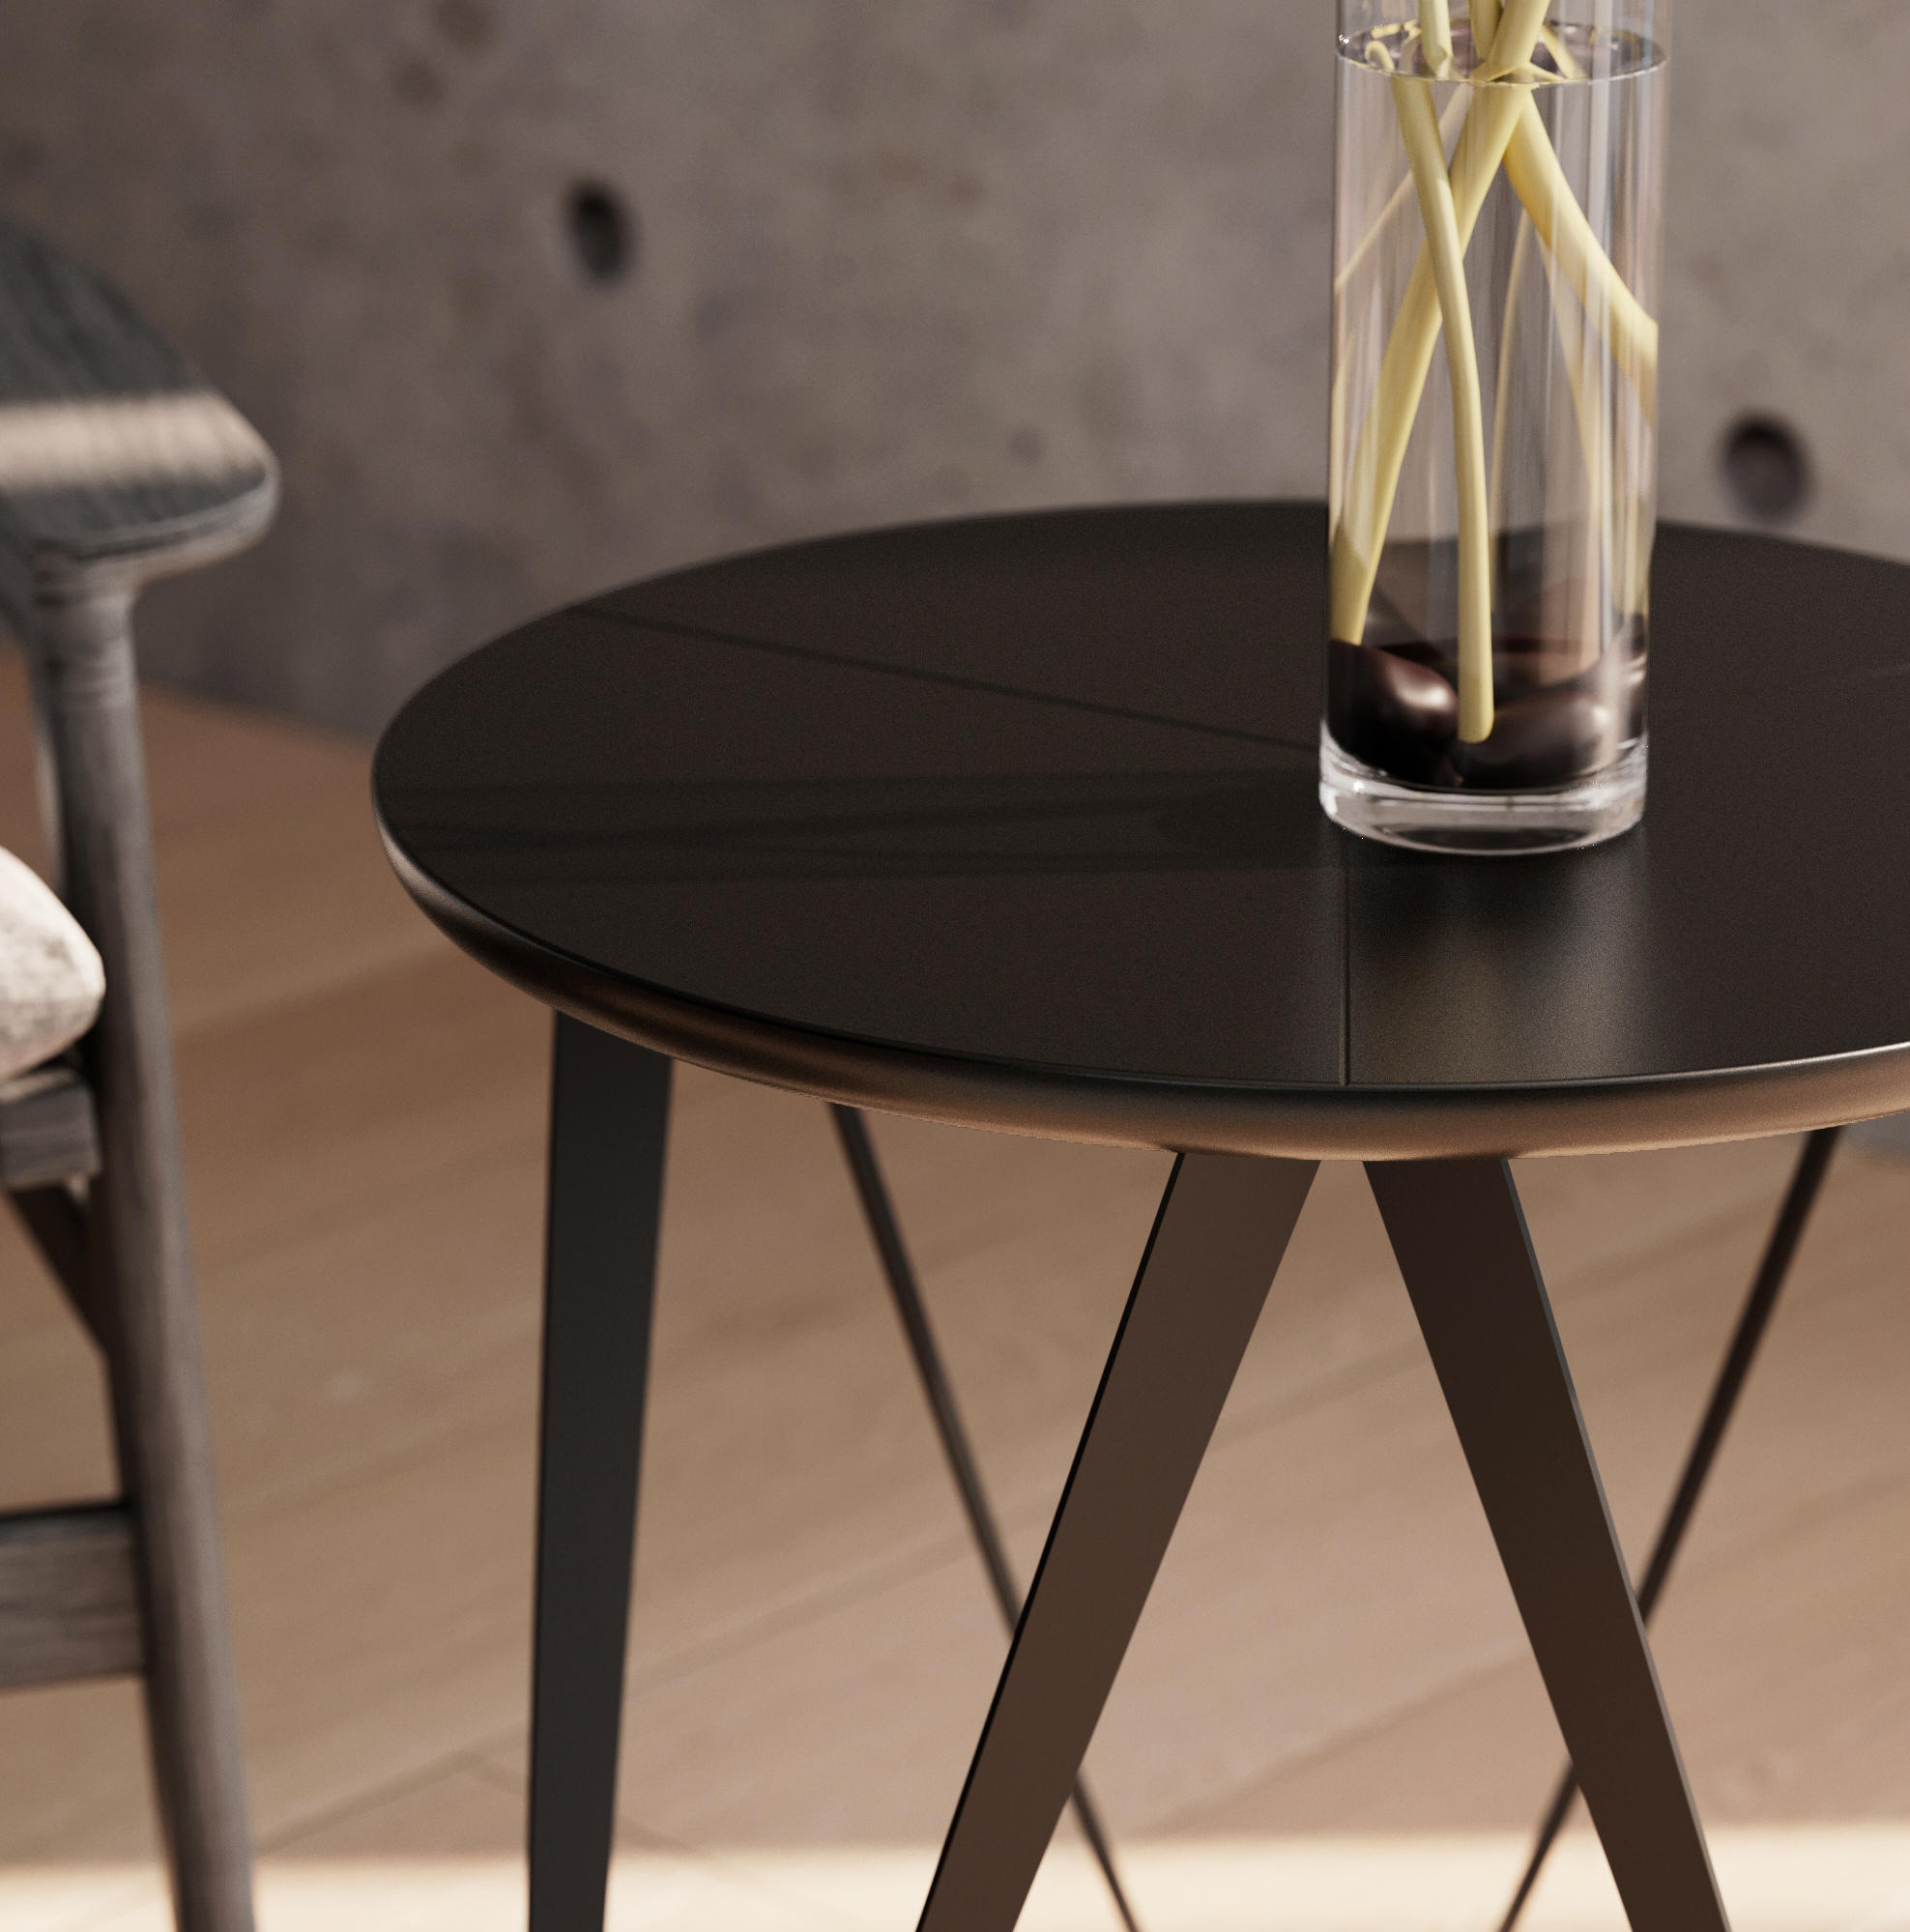 Chronos Coffee Table - Solid Wood American Walnut By Joval